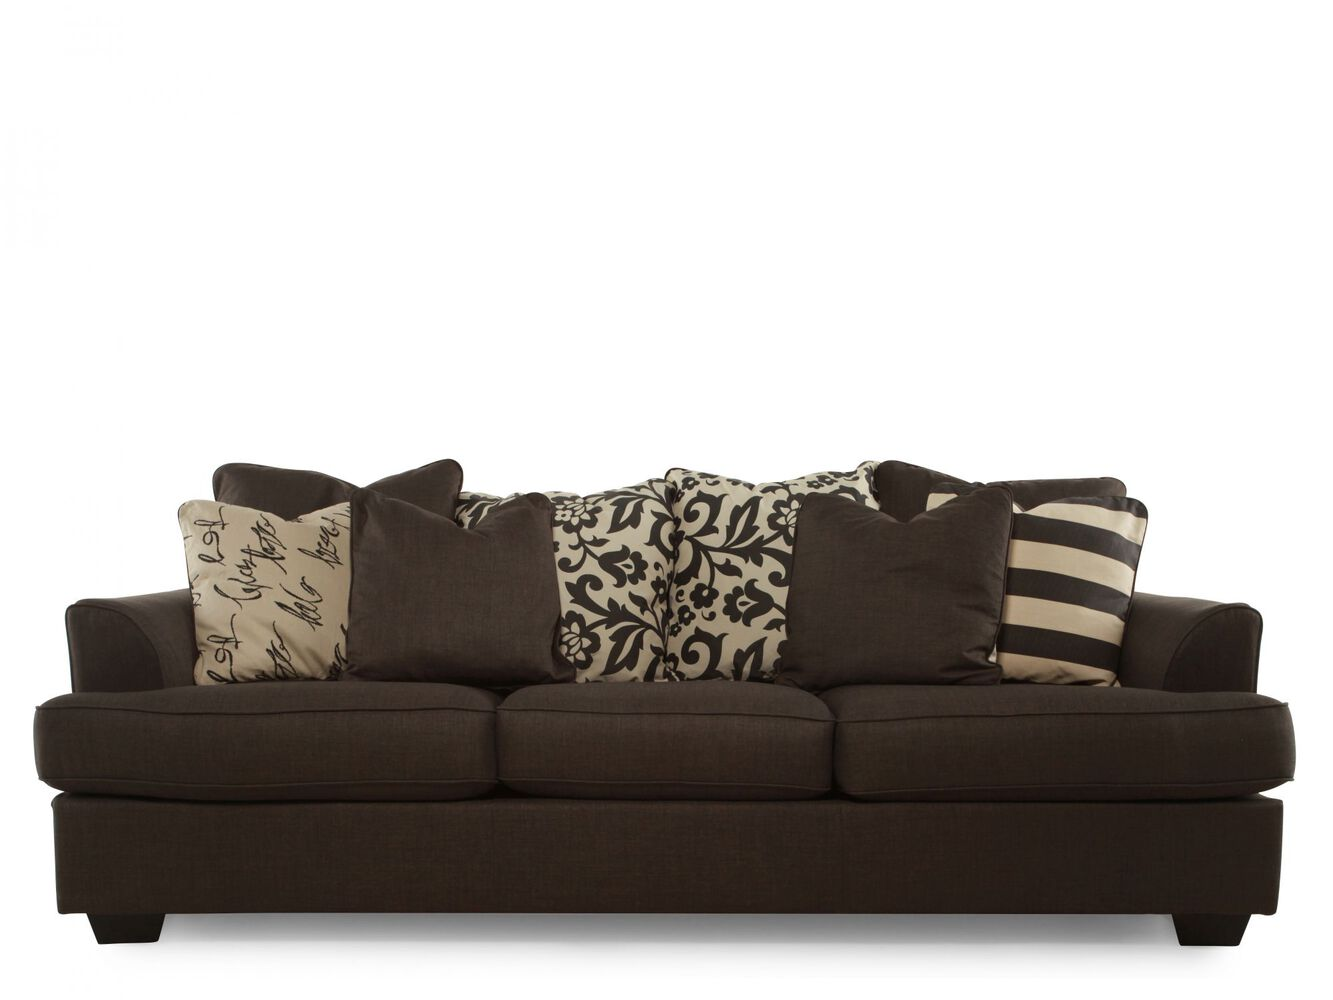 Levon charcoal sofa mathis brothers for Charcoal sofa living room